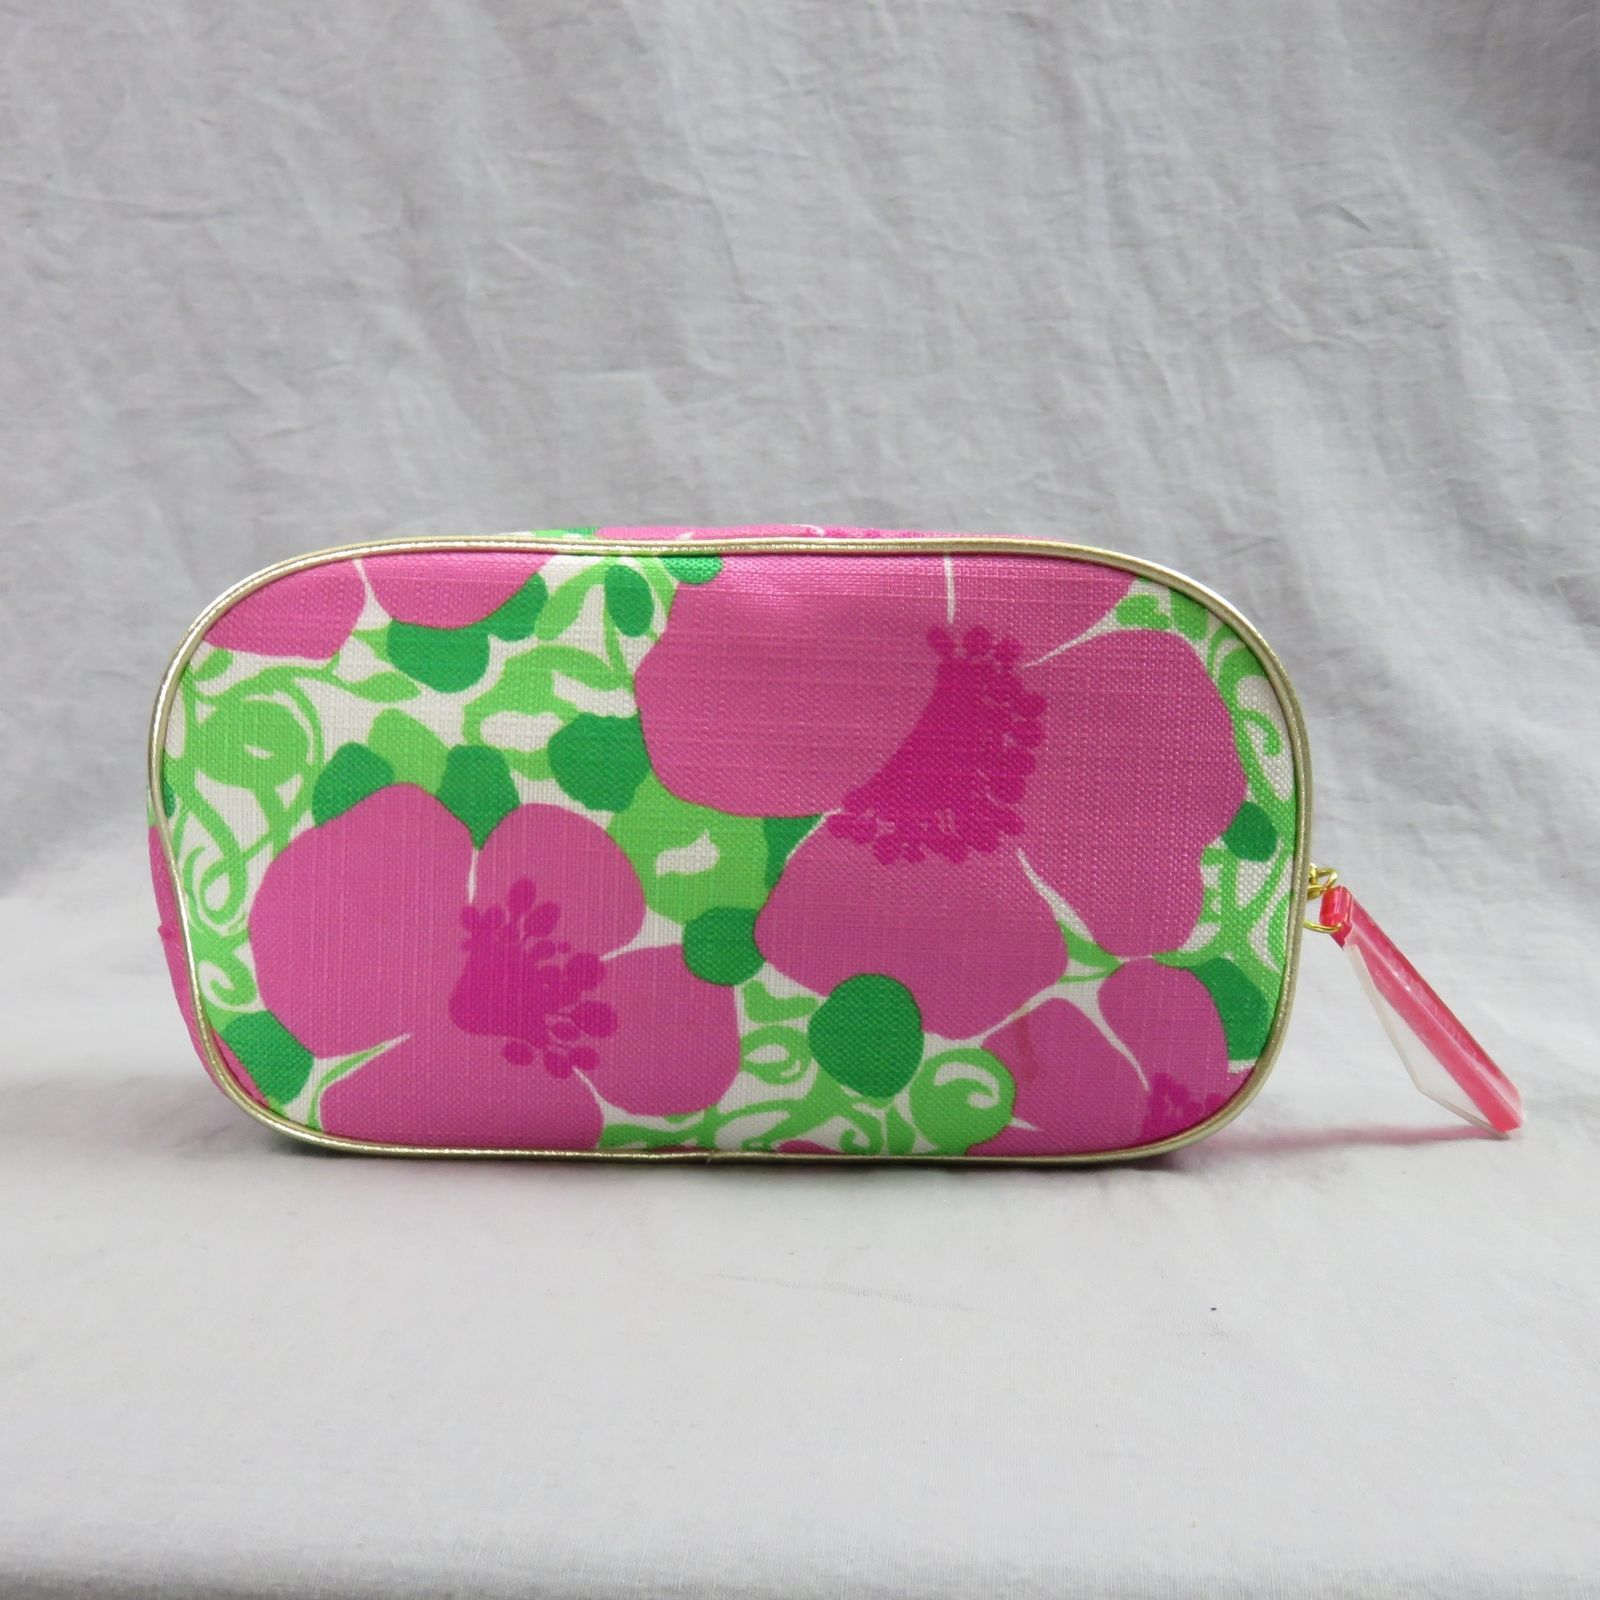 Lilly Pulitzer For Estee Lauder Pink Floral Makeup Bag Cosmetic Toiletry Holder